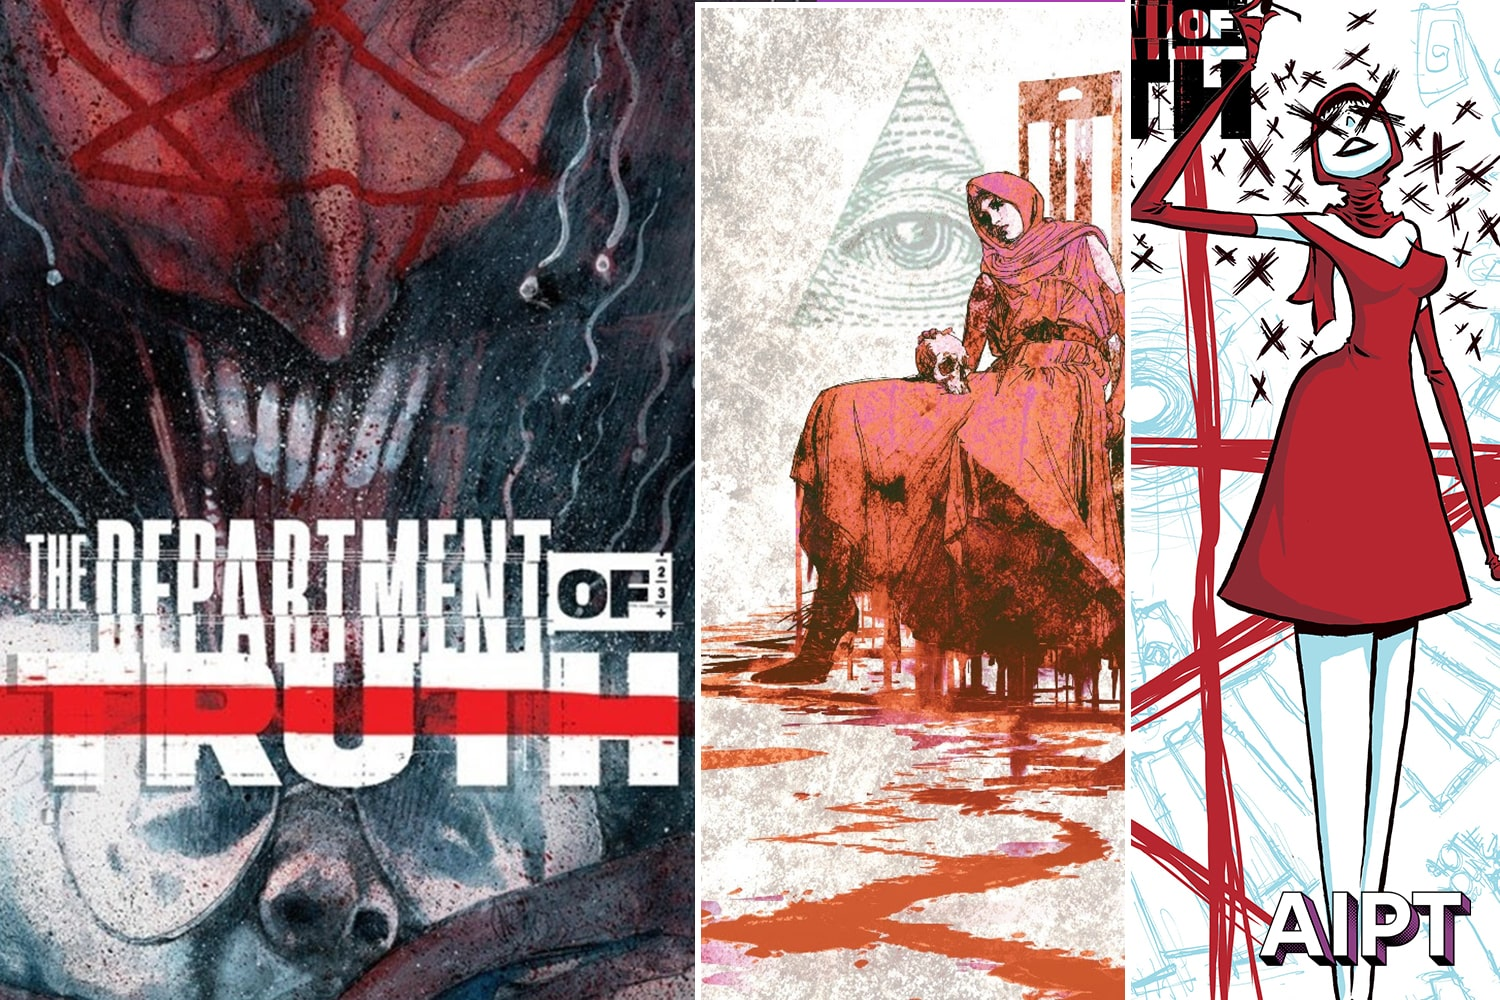 Image Comics reveals 'The Department of Truth' #8 variant art